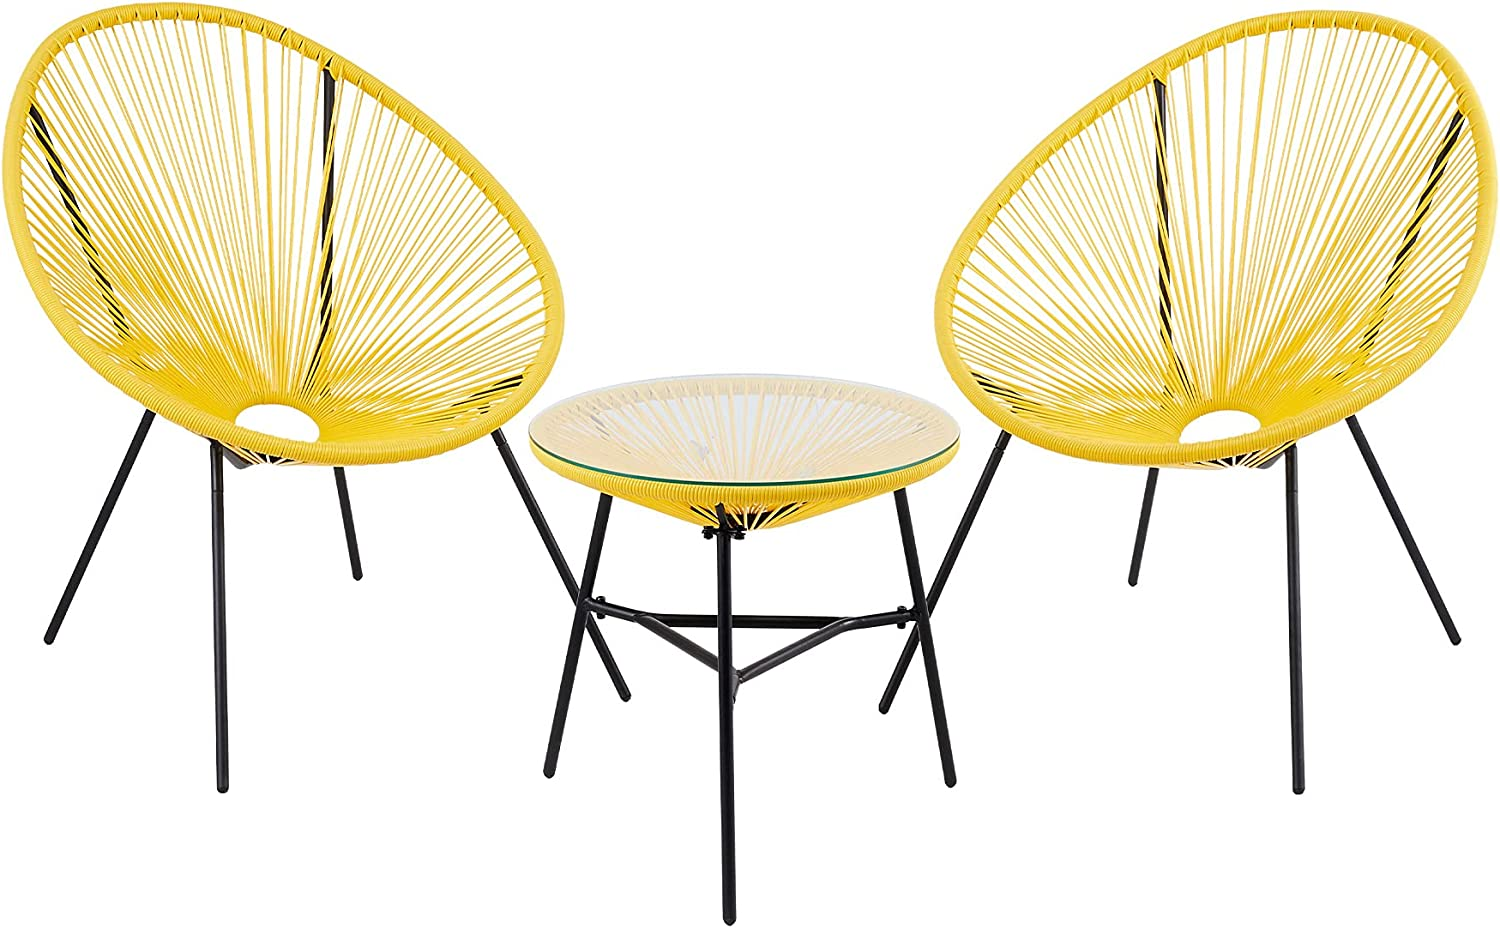 VONLUCE 3 Piece Outdoor Patio Furniture Set, Acapulco Chair Set with Glass Top Coffee Table, All Weather PE Rattan Bistro Set for Garden Poolside Balcony Patio Seating & Decor, 330lb Capacity, Yellow